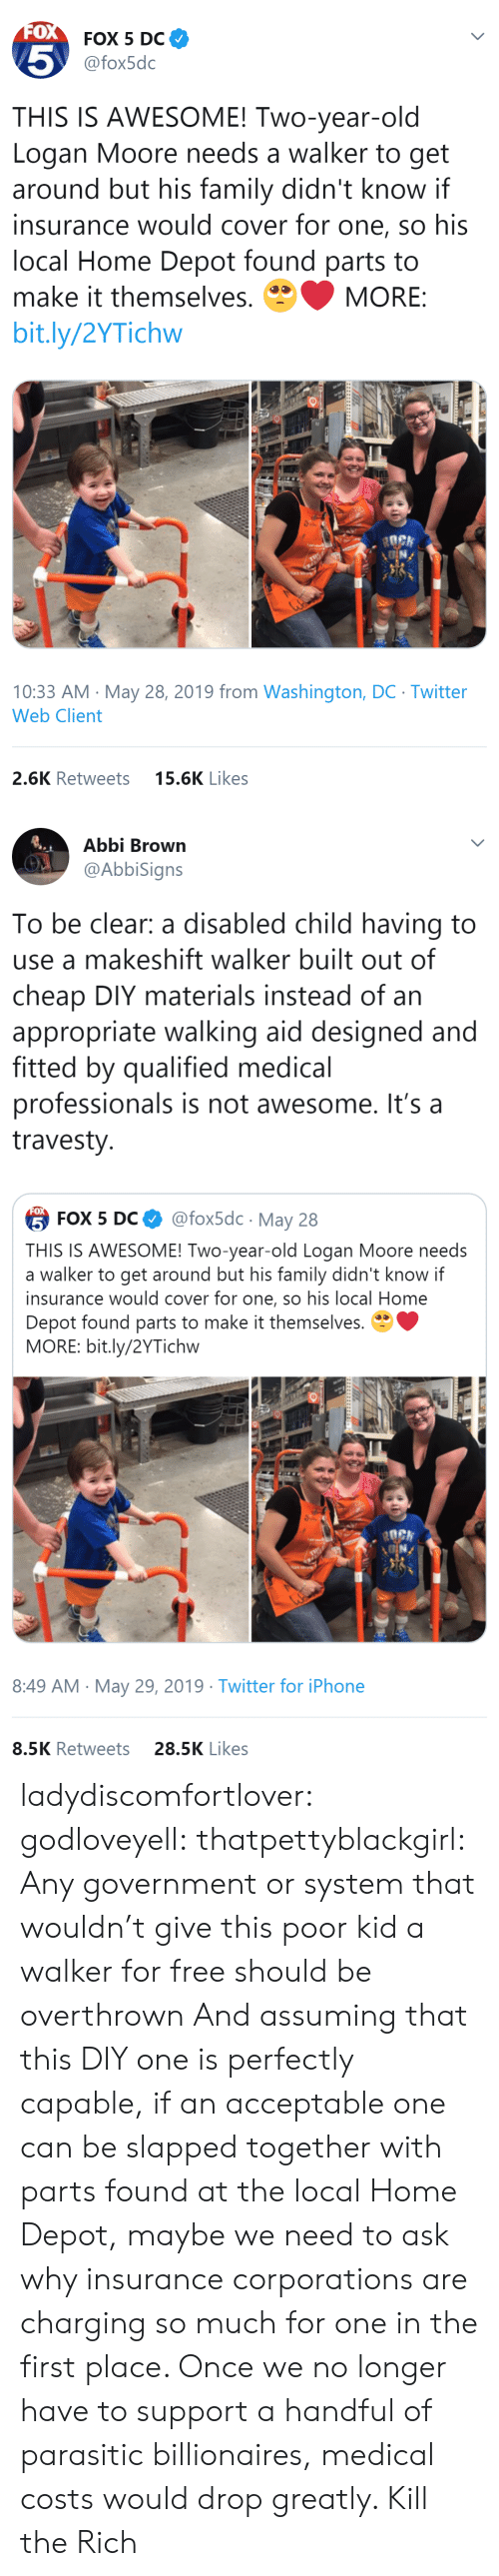 Family, Iphone, and Tumblr: FOX  FOX 5 DC  5  @fox5dc  THIS IS AWESOME! Two-year-old  Logan Moore needs a walker to get  around but his family didn't know if  insurance would cover for one, so his  local Home Depot found parts to  make it themselves.  MORE:  bit.ly/2YTichw  10:33 AM May 28, 2019 from Washington, DC Twitter  Web Client  15.6K Likes  2.6K Retweets   Abbi Brown  @AbbiSigns  To be clear: a disabled child having to  use a makeshift walker built out of  cheap DIY materials instead of an  appropriate walking aid designed and  fitted by qualified medical  professionals is not awesome. It's a  travesty  FOX  @fox5dc May 28  5 FOX 5 DС  THIS IS AWESOME! Two-year-old Logan Moore needs  a walker to get around but his family didn't know if  insurance would cover for one, so his local Home  Depot found parts to make it themselves.  MORE: bit.ly/2YTichw  8:49 AM May 29, 2019 Twitter for iPhone  28.5K Likes  8.5K Retweets ladydiscomfortlover: godloveyell:  thatpettyblackgirl:  Any government or system that wouldn't give this poor kid a walker for free should be overthrown   And assuming that this DIY one is perfectly capable, if an acceptable one can be slapped together with parts found at the local Home Depot, maybe we need to ask why insurance corporations are charging so much for one in the first place.  Once we no longer have to support a handful of parasitic billionaires, medical costs would drop greatly.    Kill the Rich